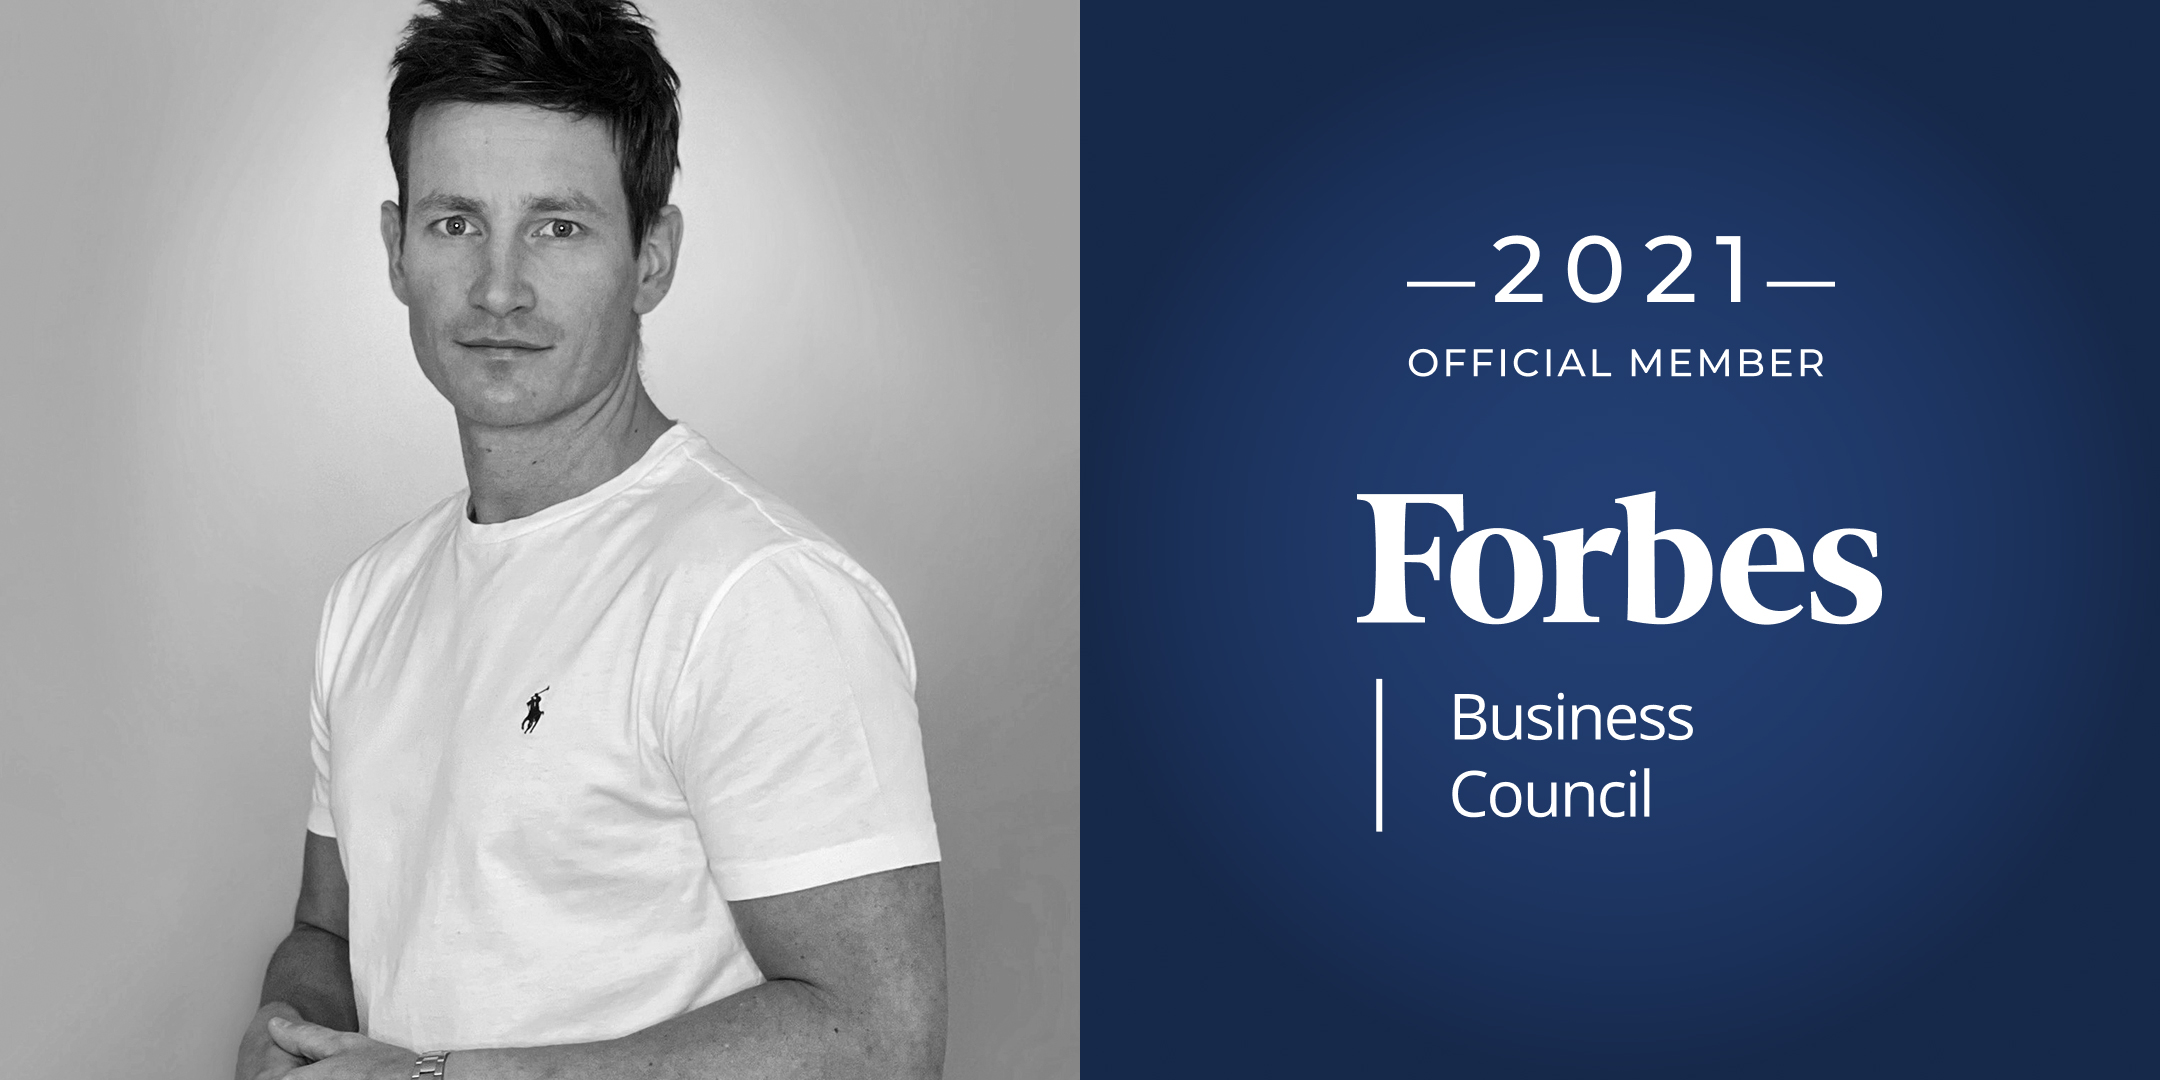 Richard Breitengraser accepted into Forbes Business Council